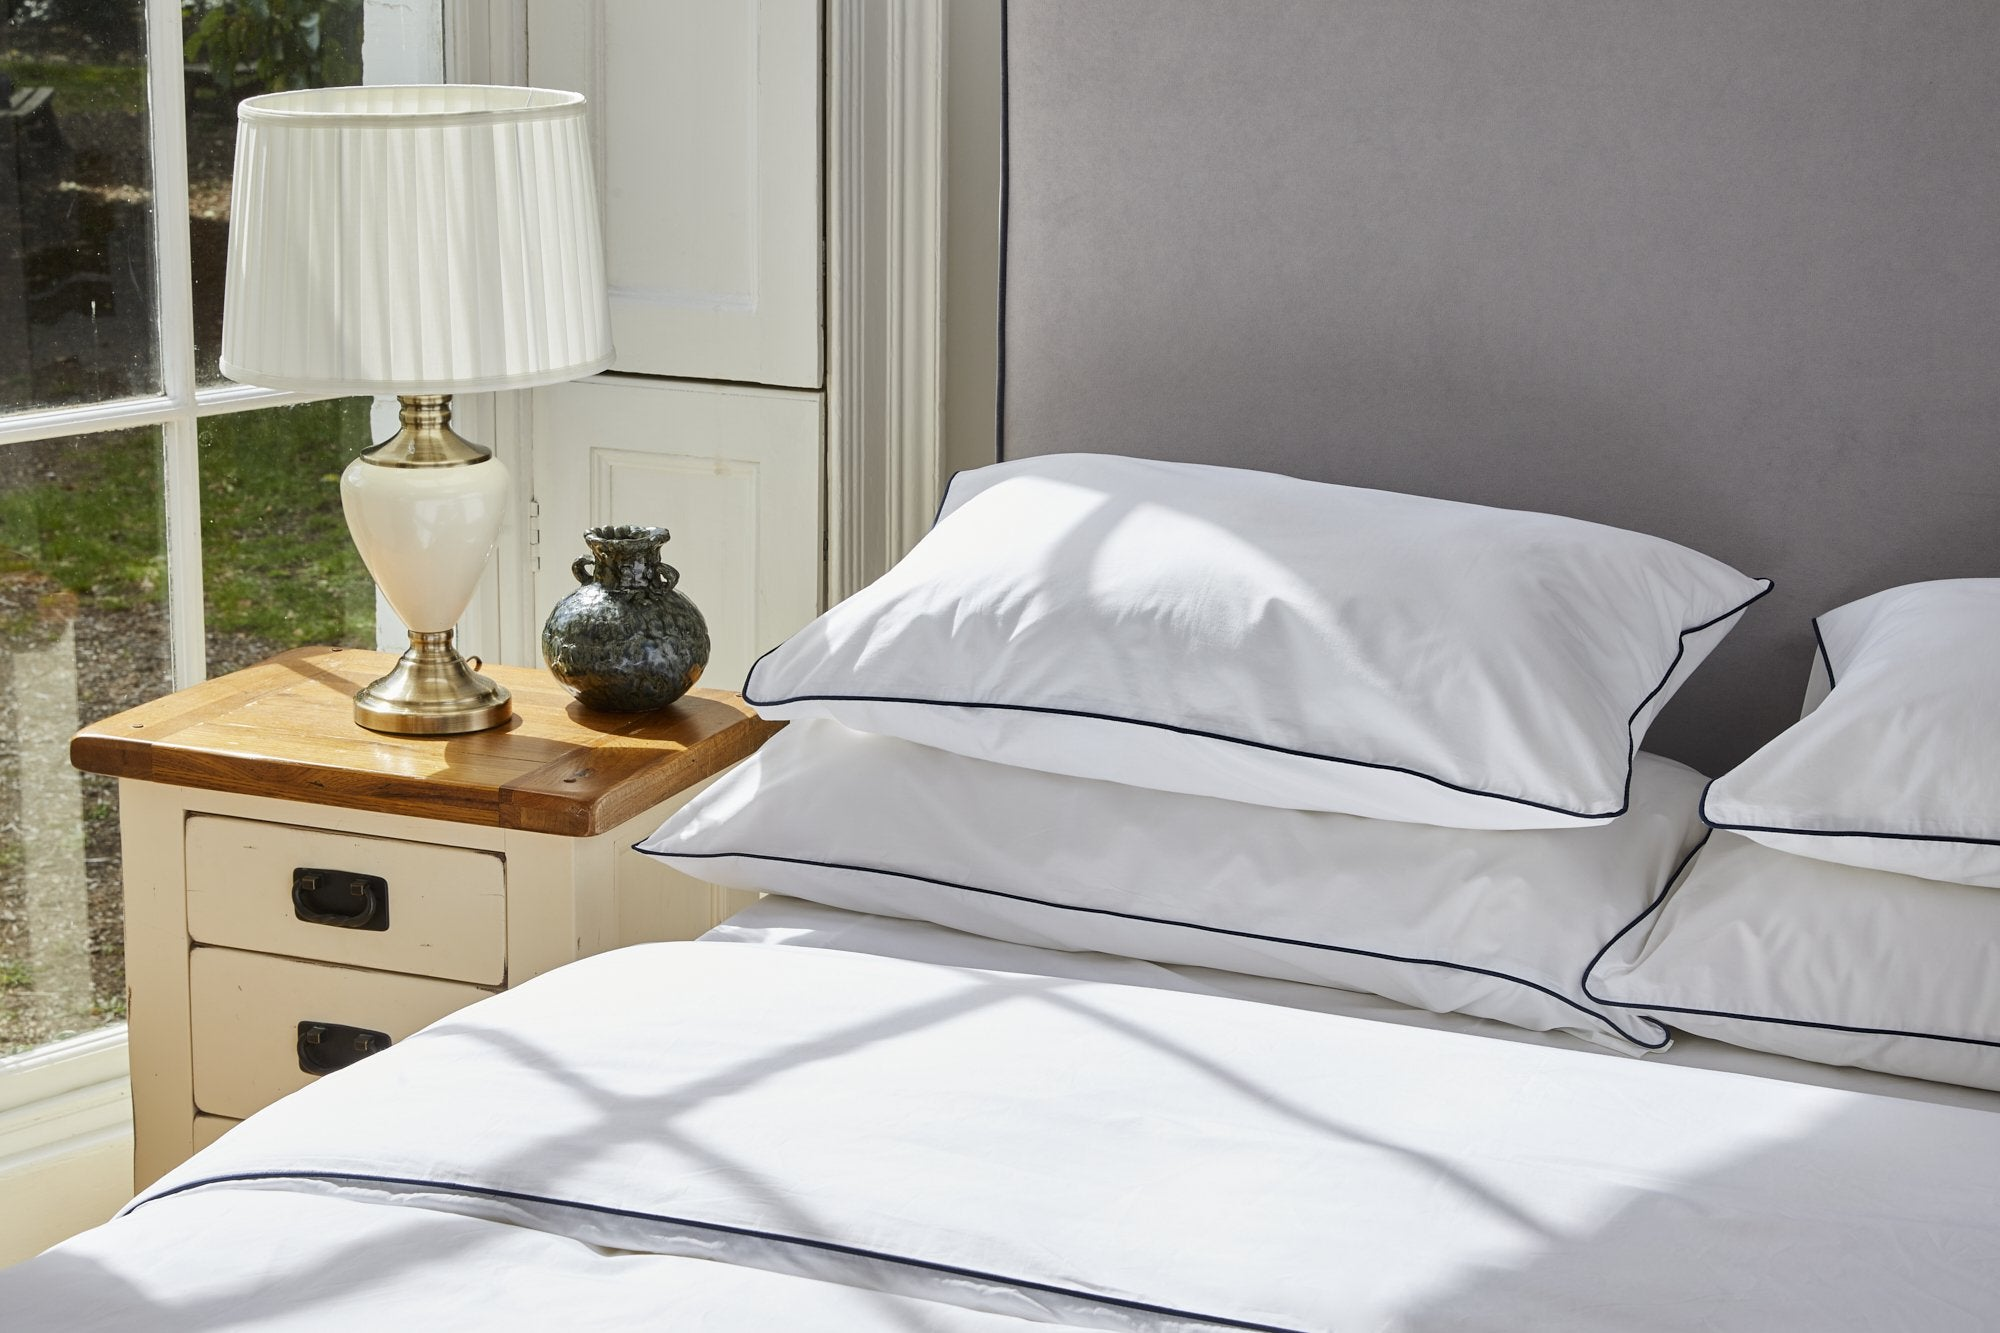 Piping duvet cover and pillowcase